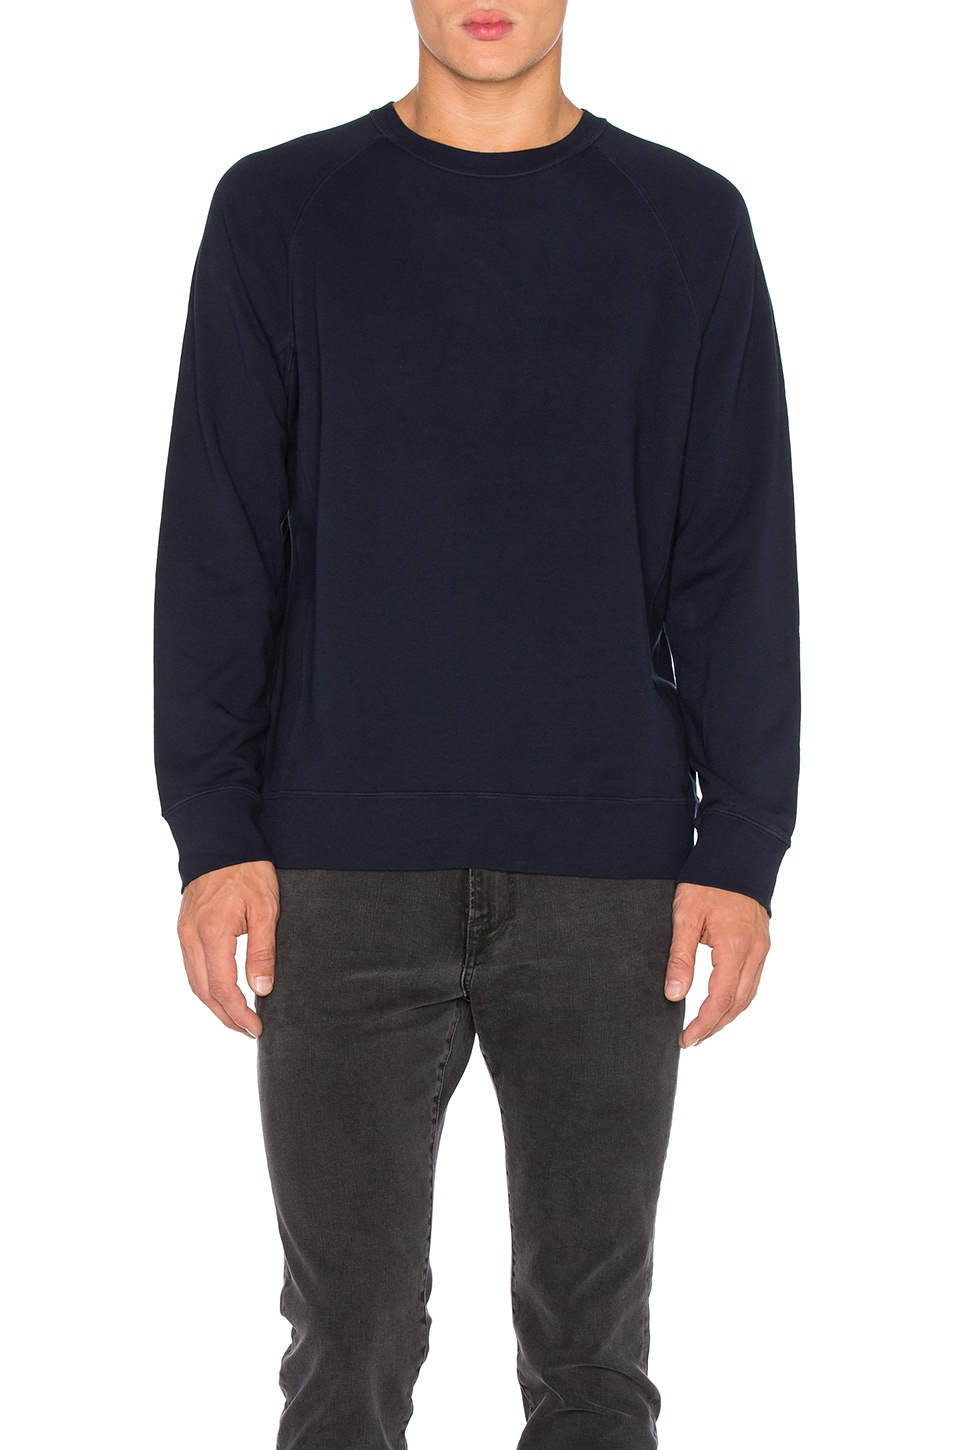 Raglan Sweatshirt by FRAME Denim